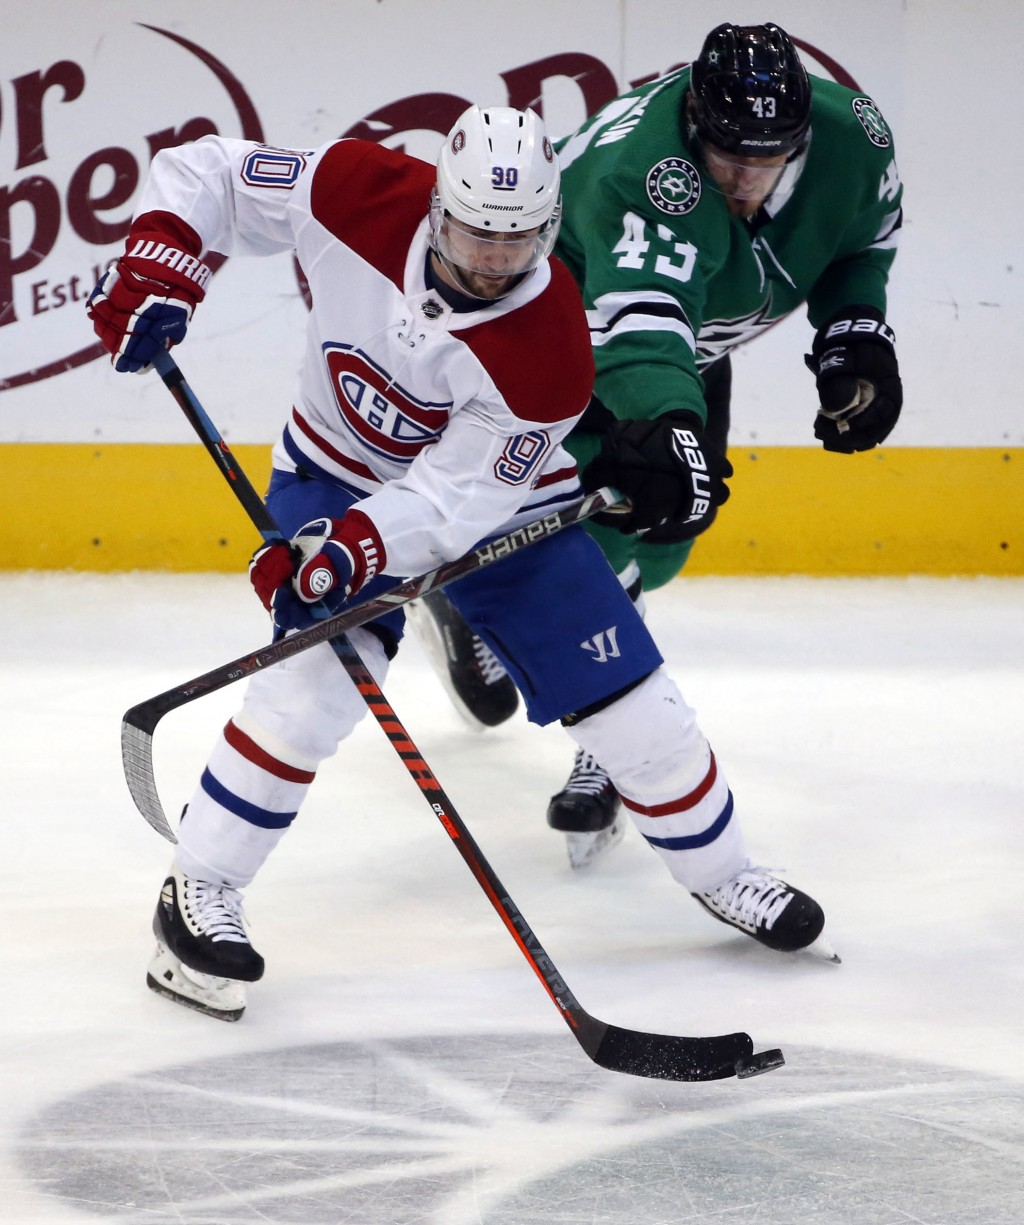 Dallas Stars right wing Valeri Nichushkin (43) defends against Montreal Canadiens left wing Tomas Tatar (90) during the second period of an NHL hockey